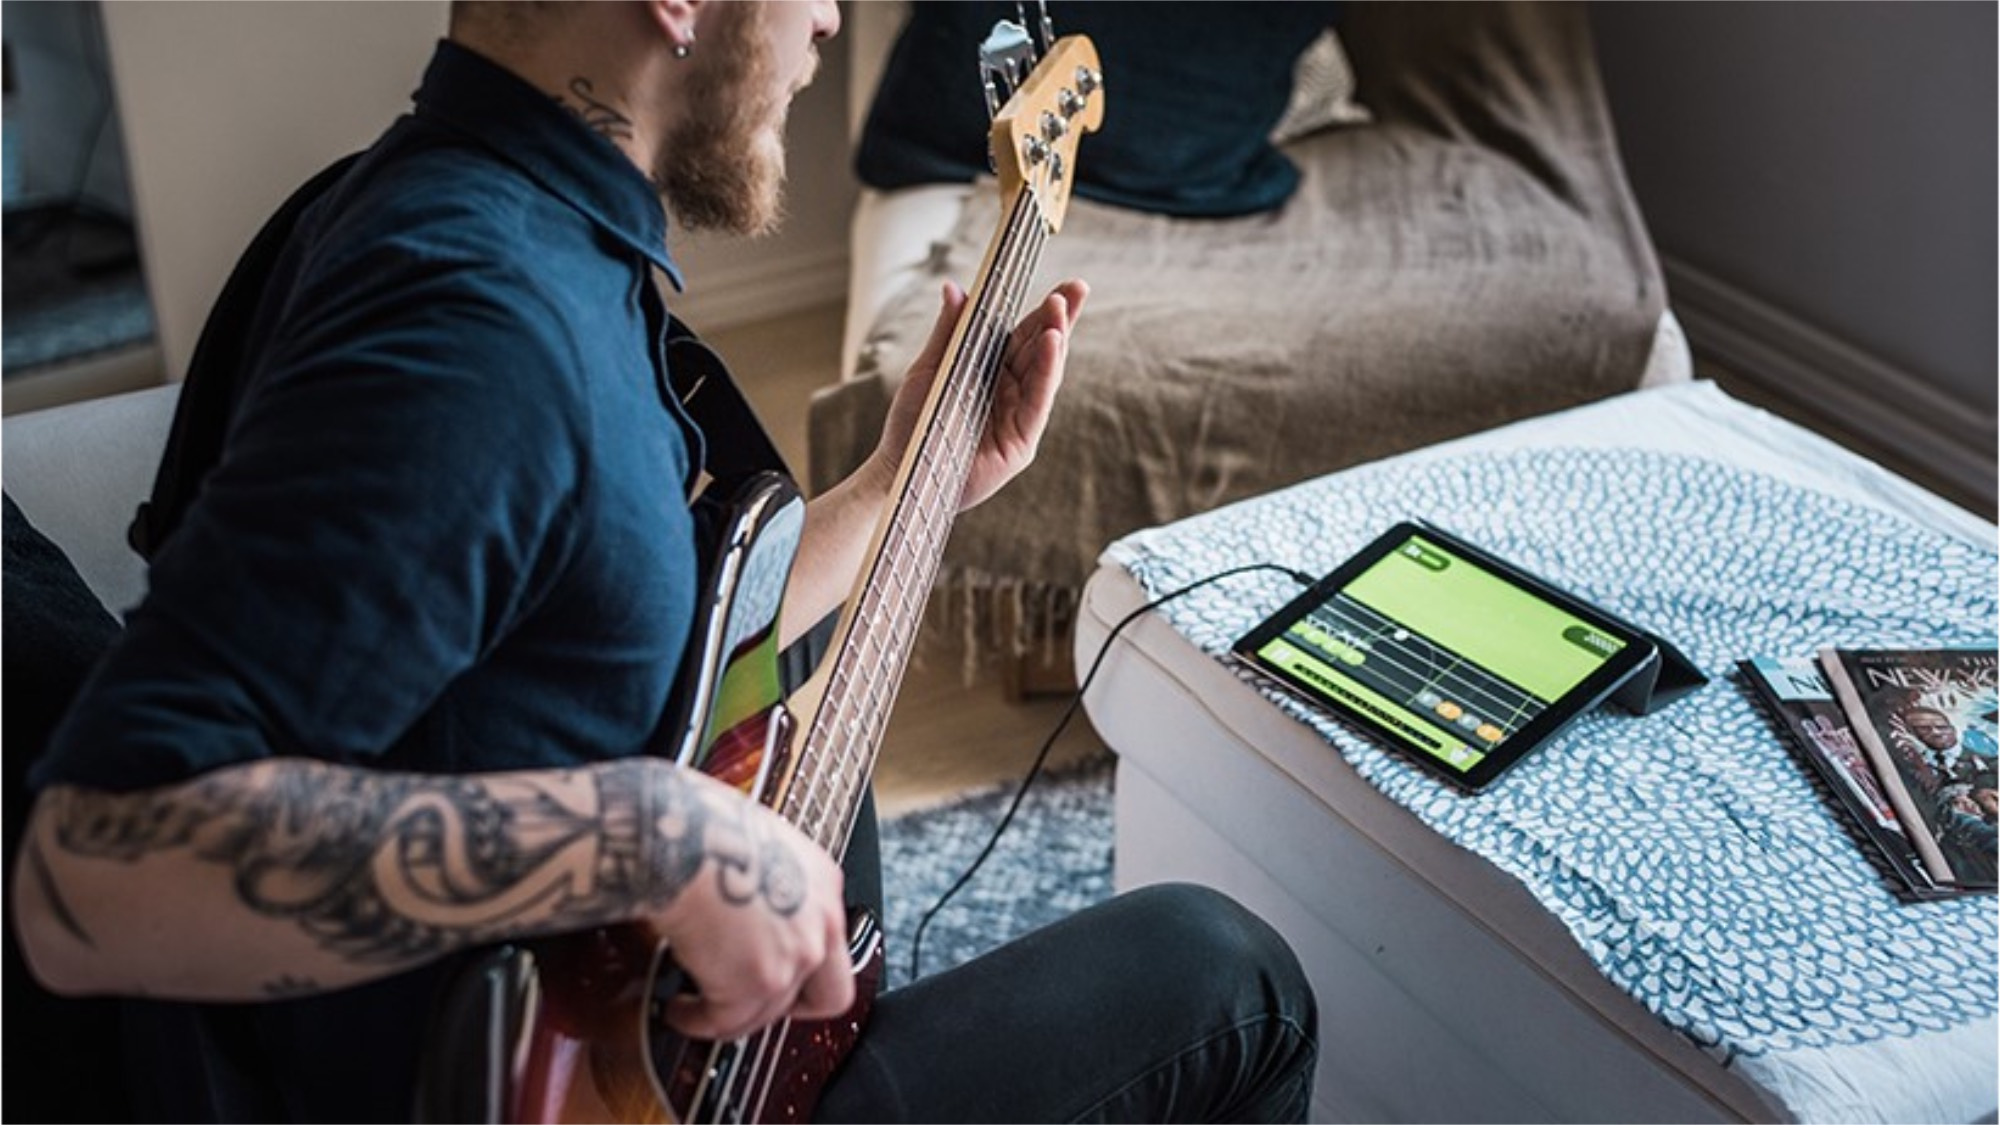 Tattooed man playing guitar with a music app